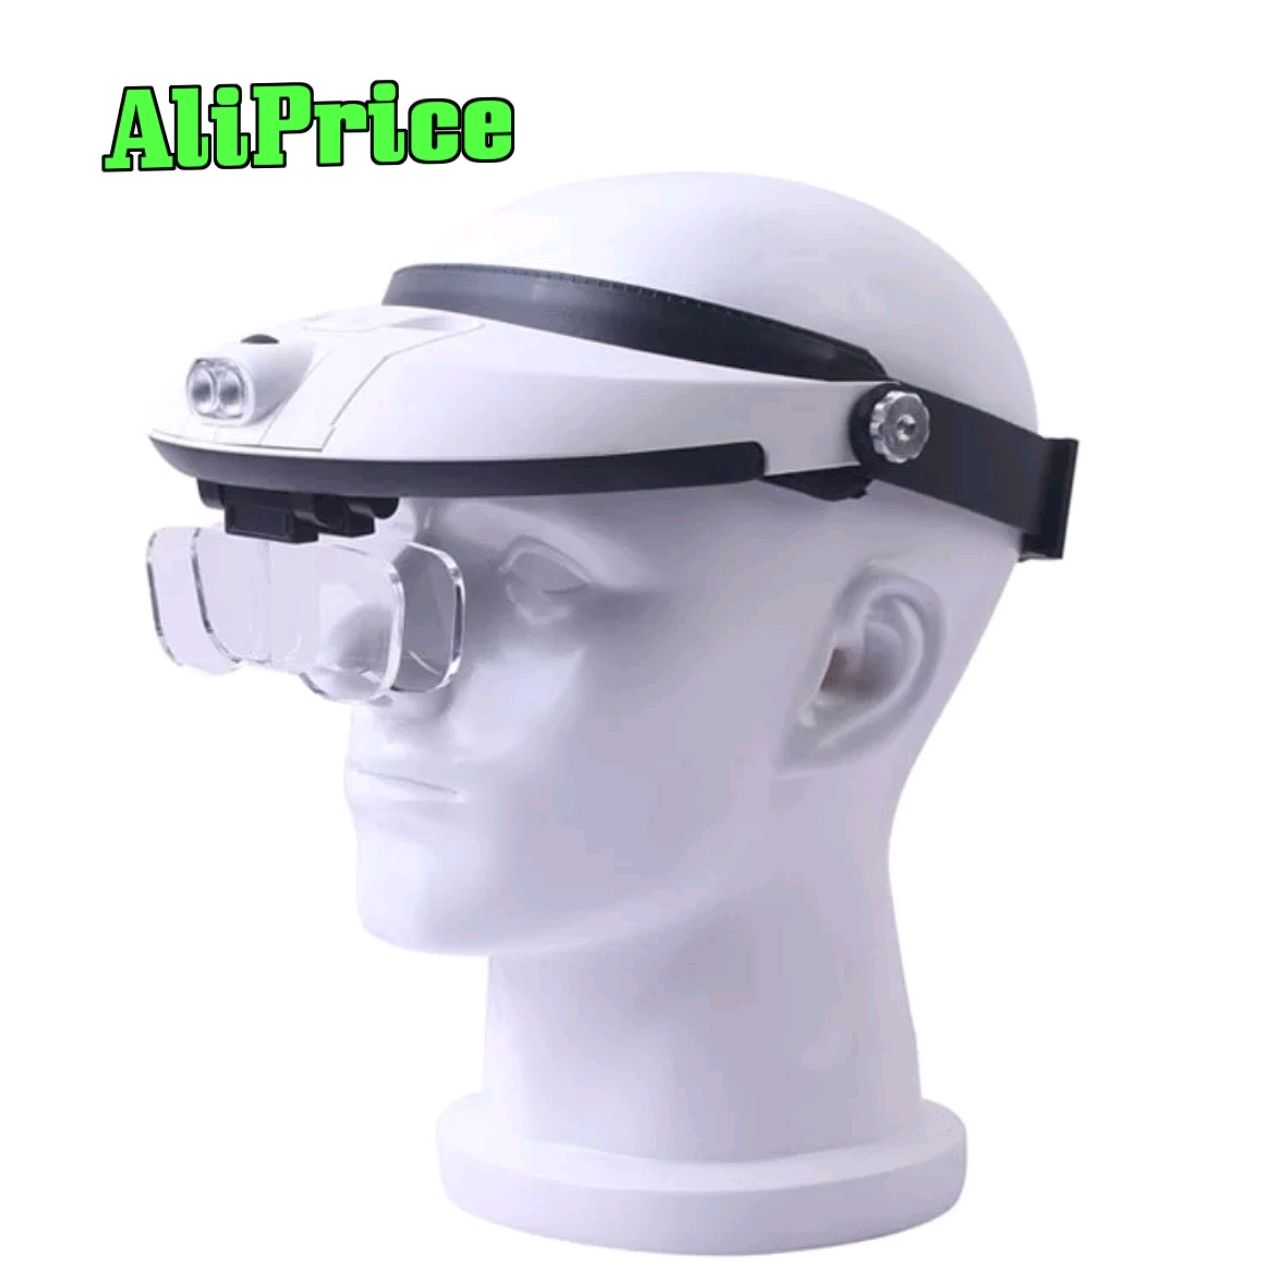 handmade. Livemaster - handmade. Buy Lighted magnifier headband 2 LED 5 lens.Gift, magnifier